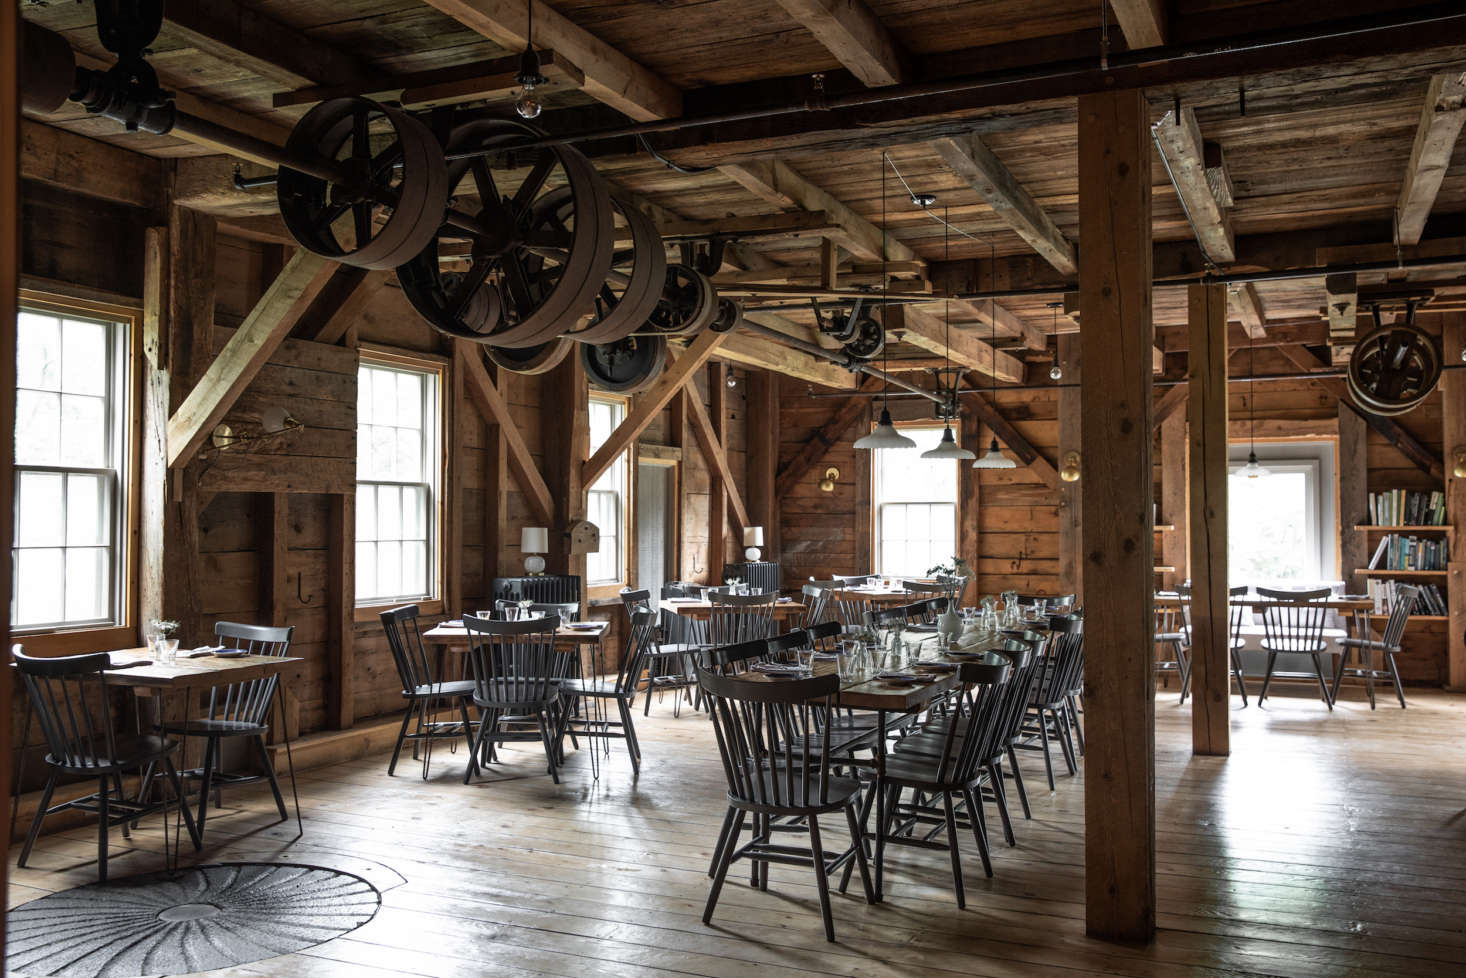 Inside, remnants of the old mill remain: pulley systems and an old millstone, inlaid in the floor. French fitted the dining room simply, and all herself, with hand-built tables and painted spindle-back chairs. She also had a vent and air duct installed to facilitate the working kitchen.